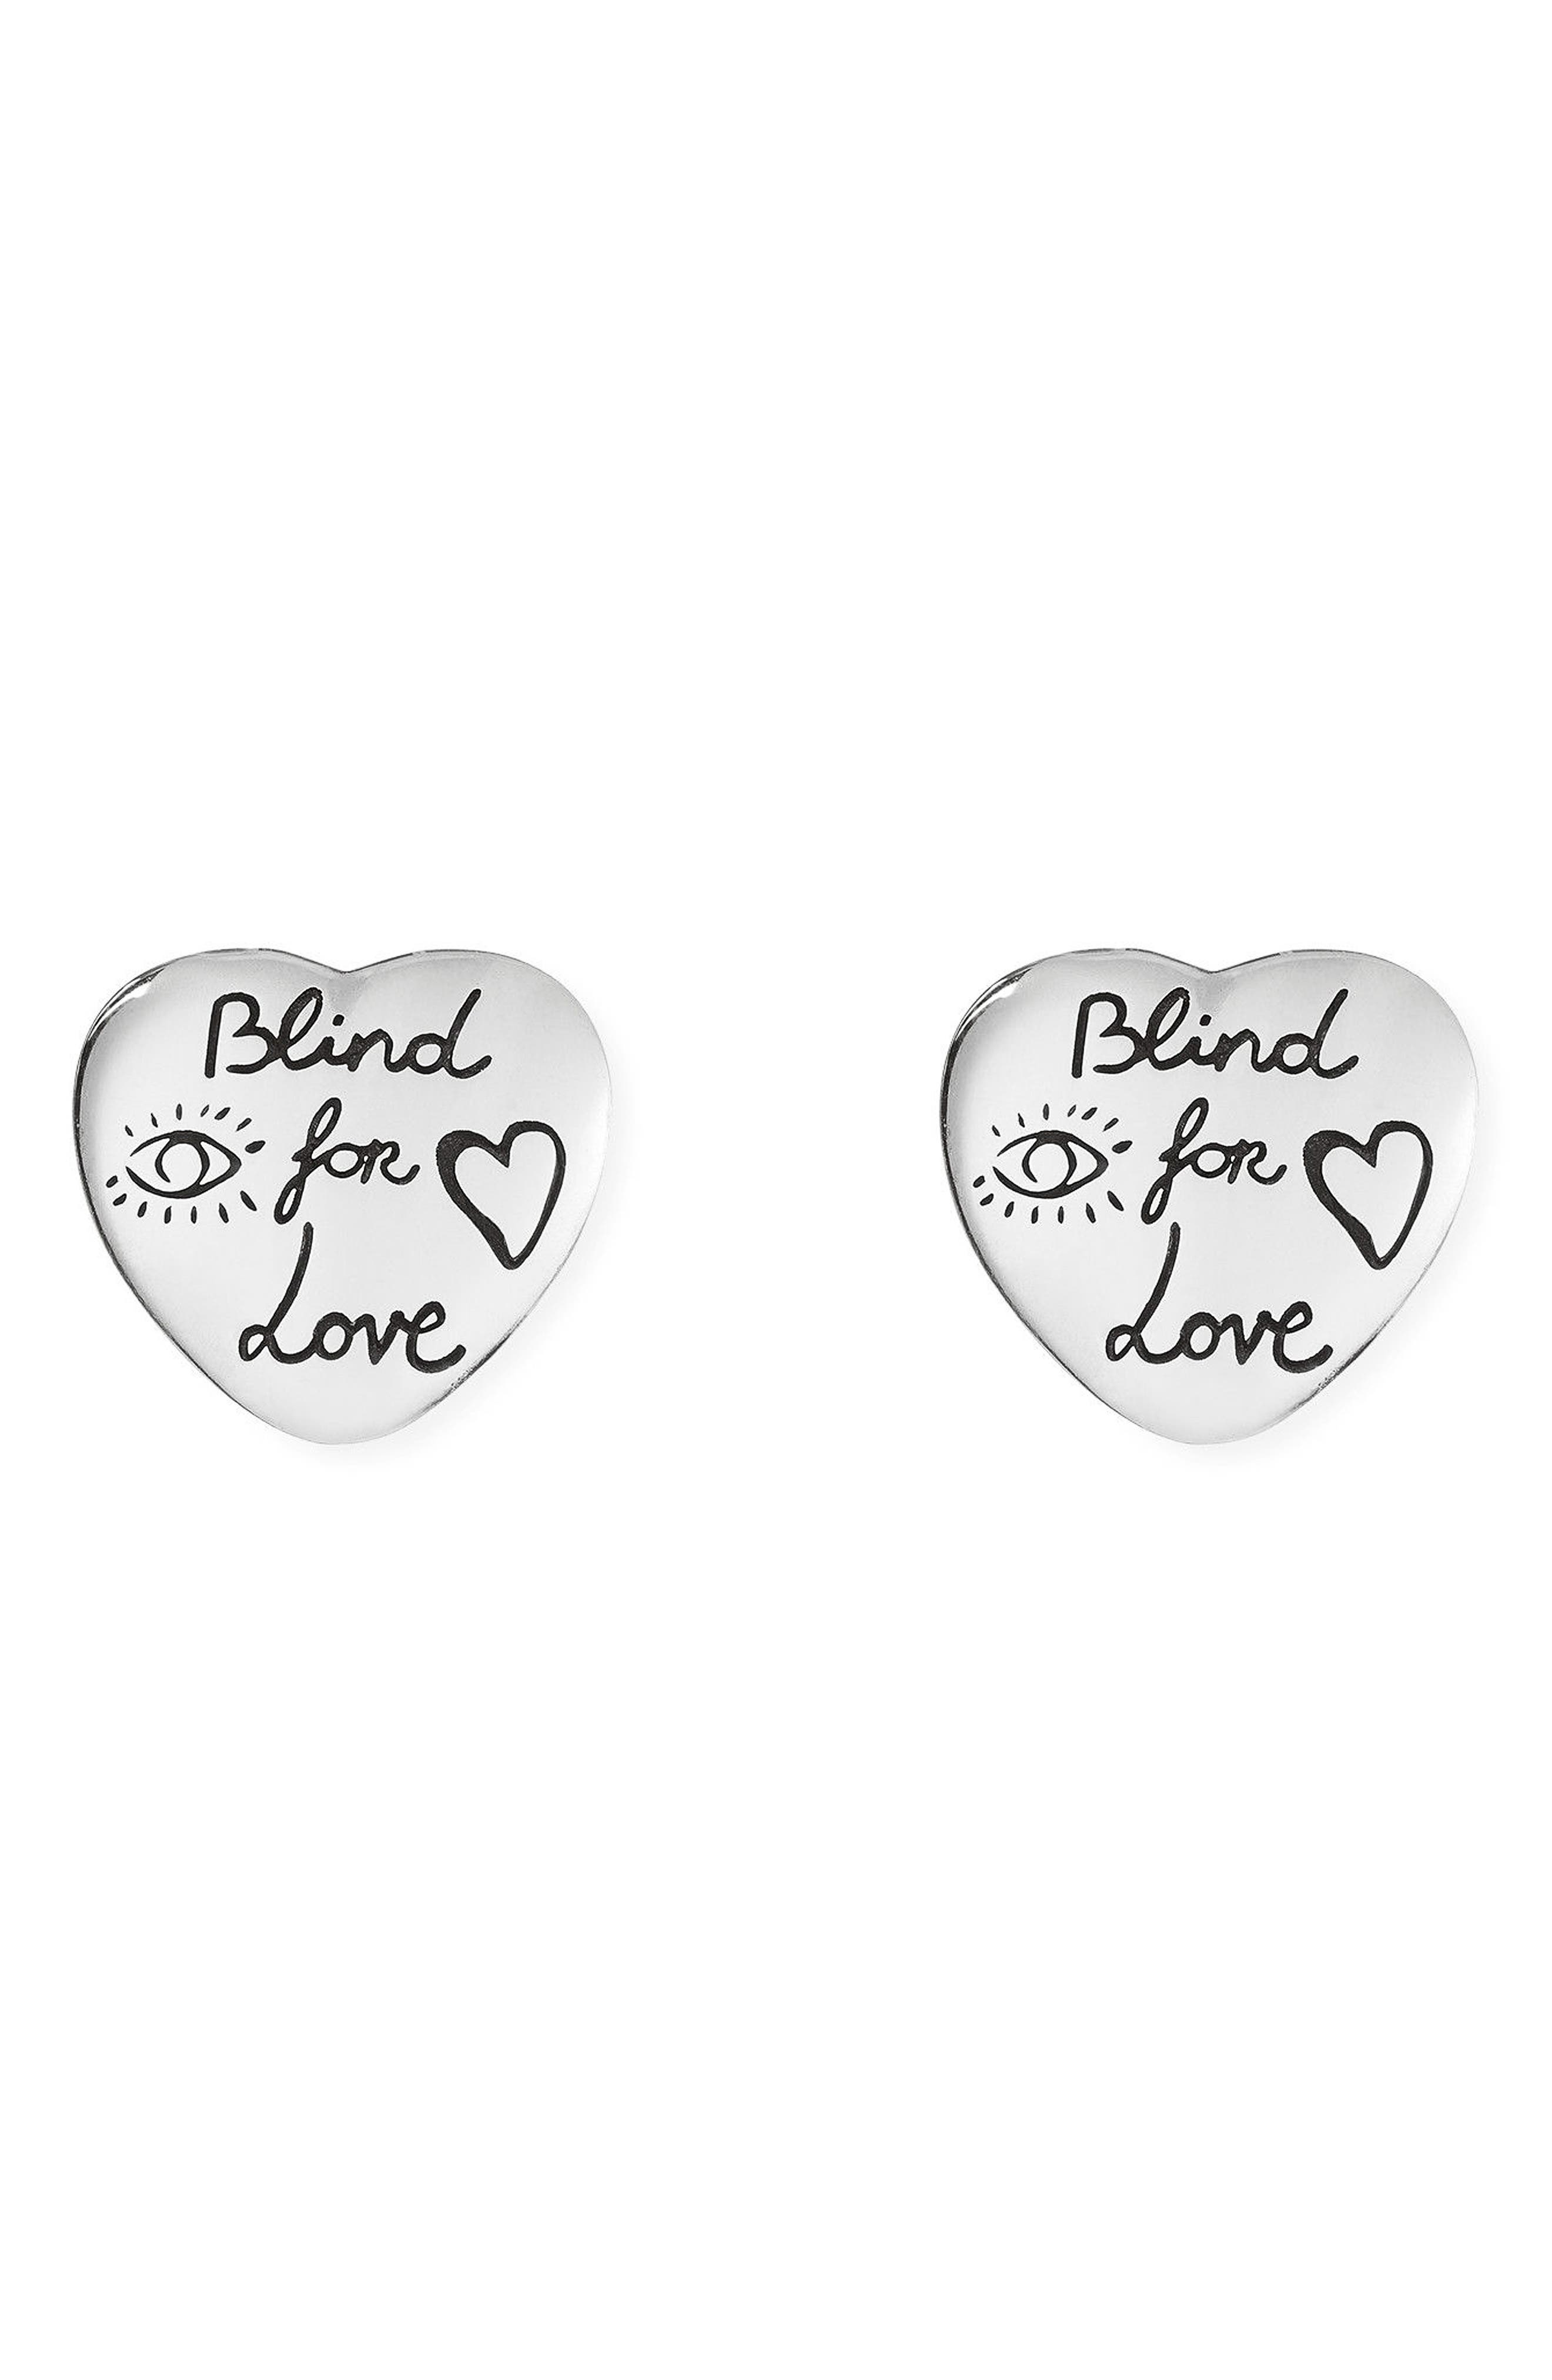 Blind for Love Stud Earrings,                             Main thumbnail 1, color,                             STERLING SILVER